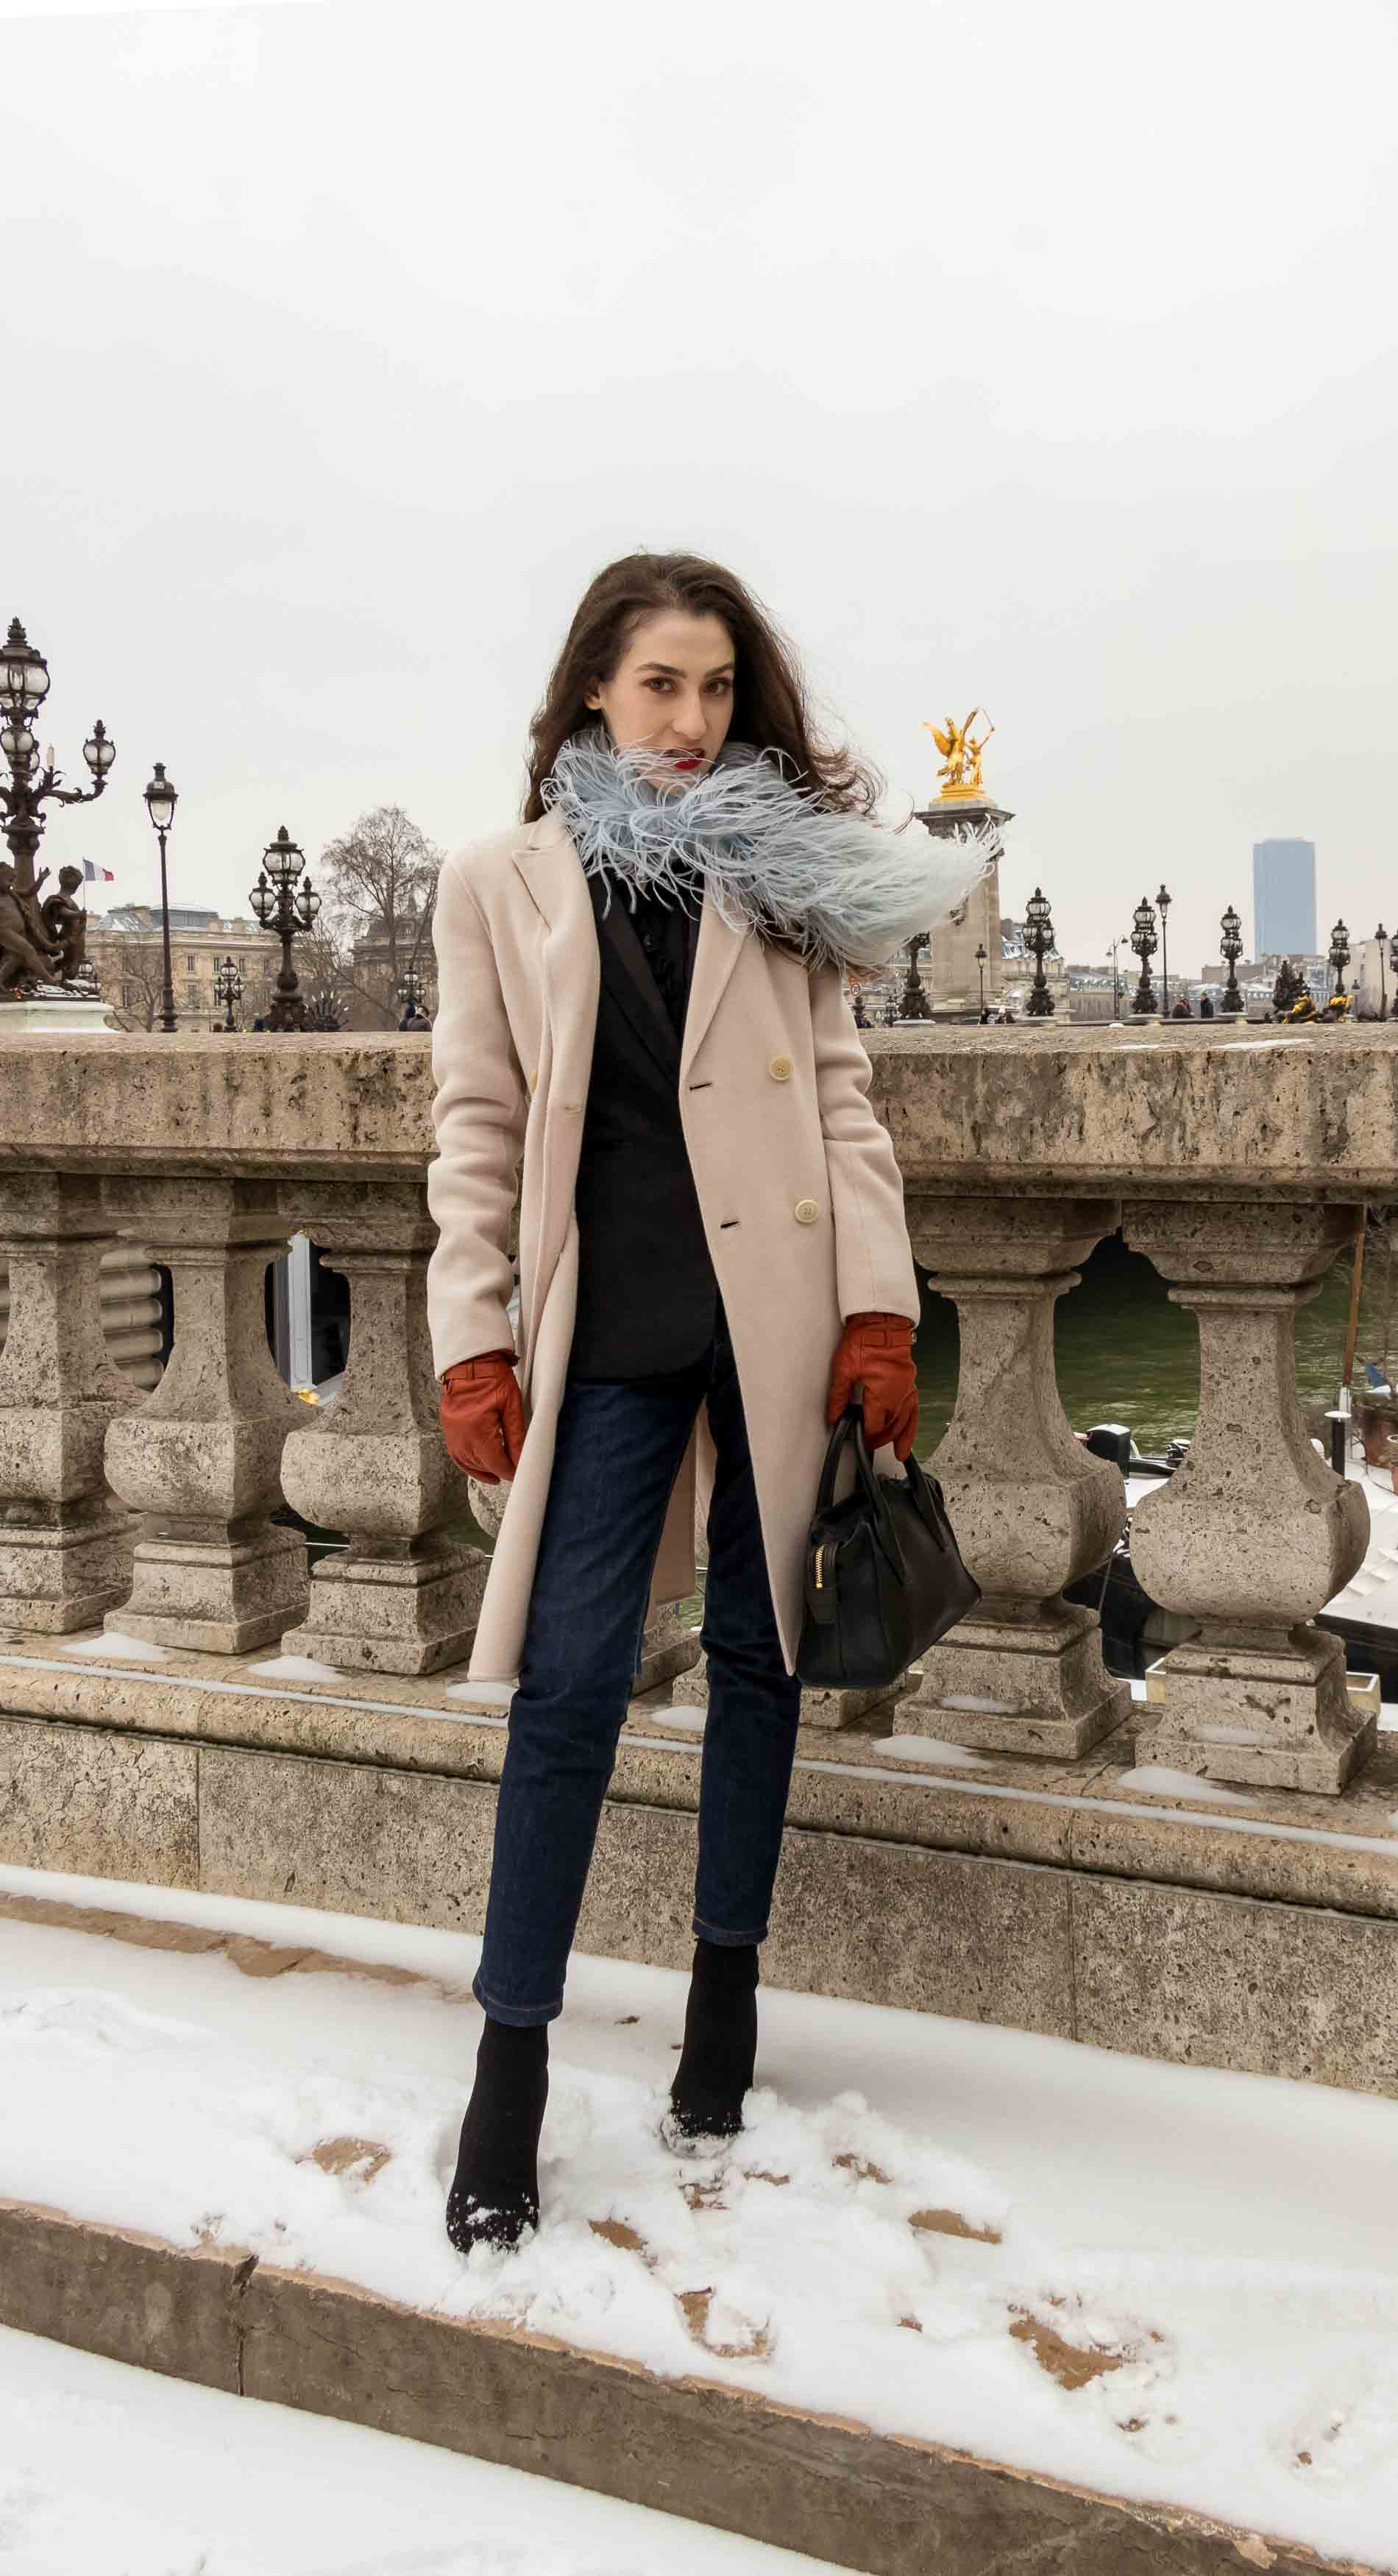 Fashion Blogger Veronika Lipar of Brunette from Wall Street wearing feathers, Weekend Maxmara coat, dark denim jeans, black sock boots, leather gloves, standing at Pont du Alexandre III in Paris during Paris fashion week fall winter 2018/19